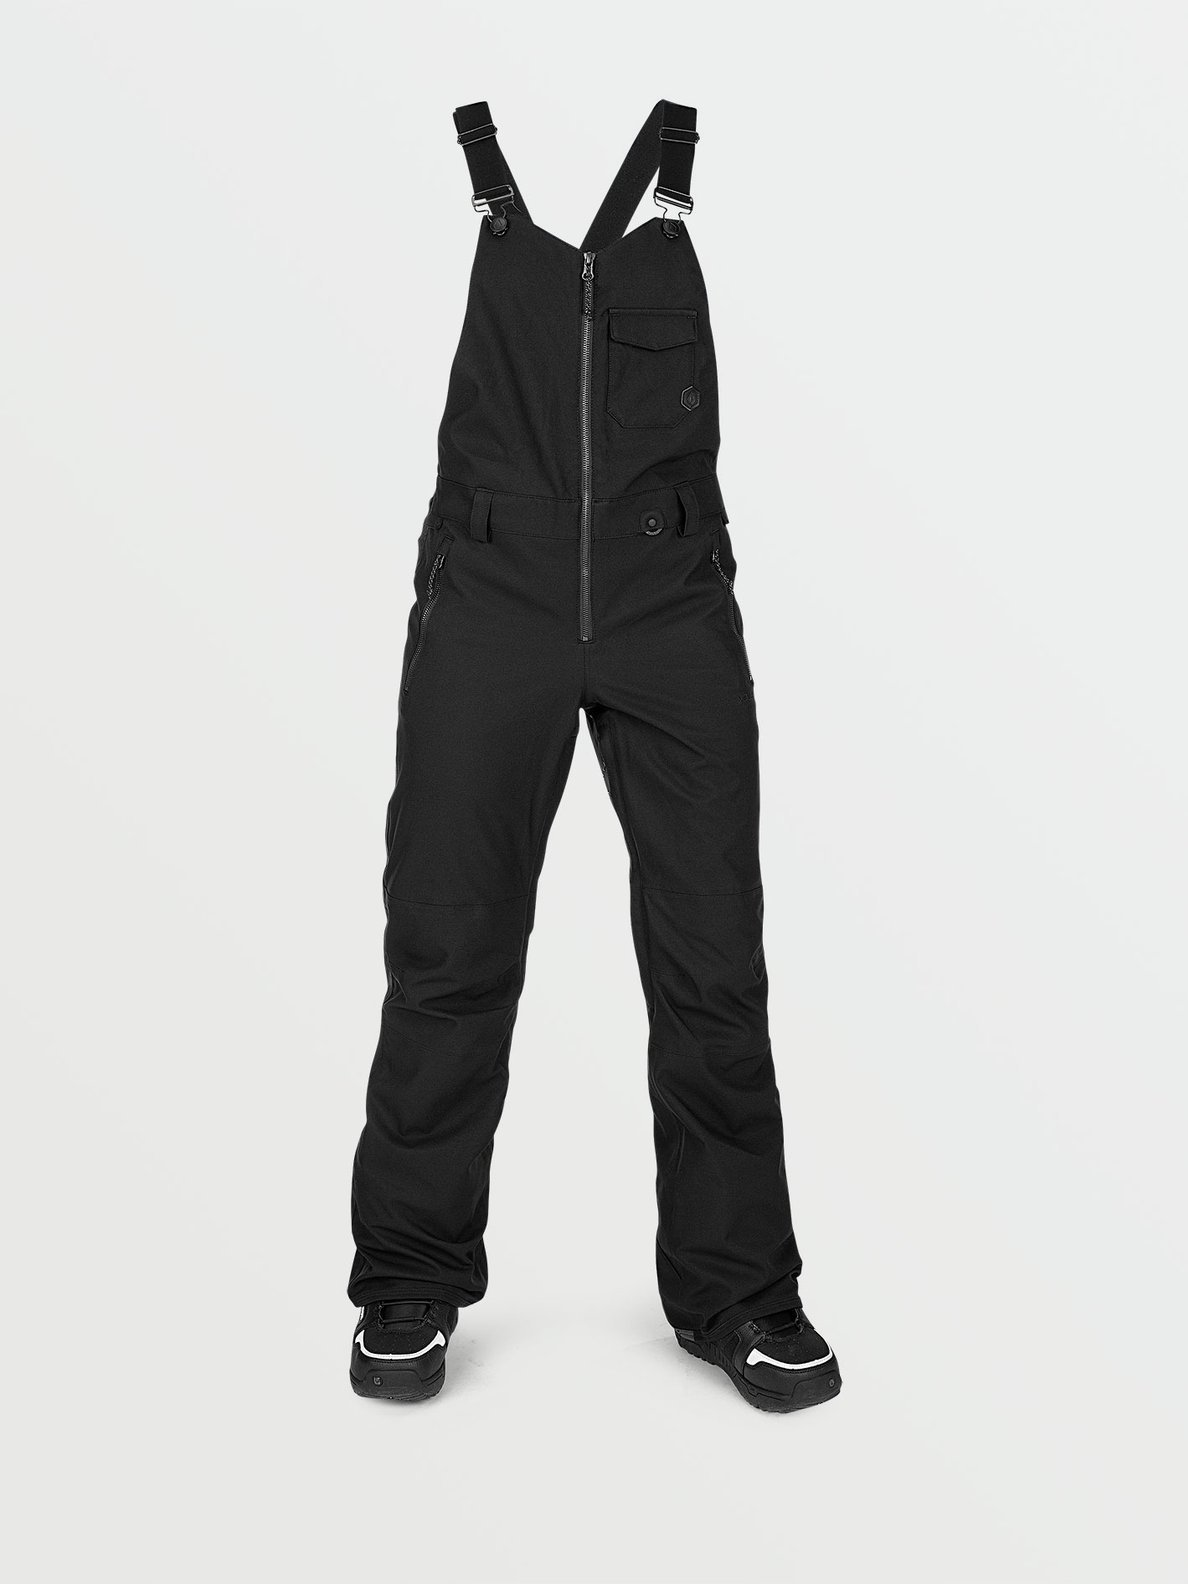 Volcom Swift Bib Overall (Multiple Color Options)